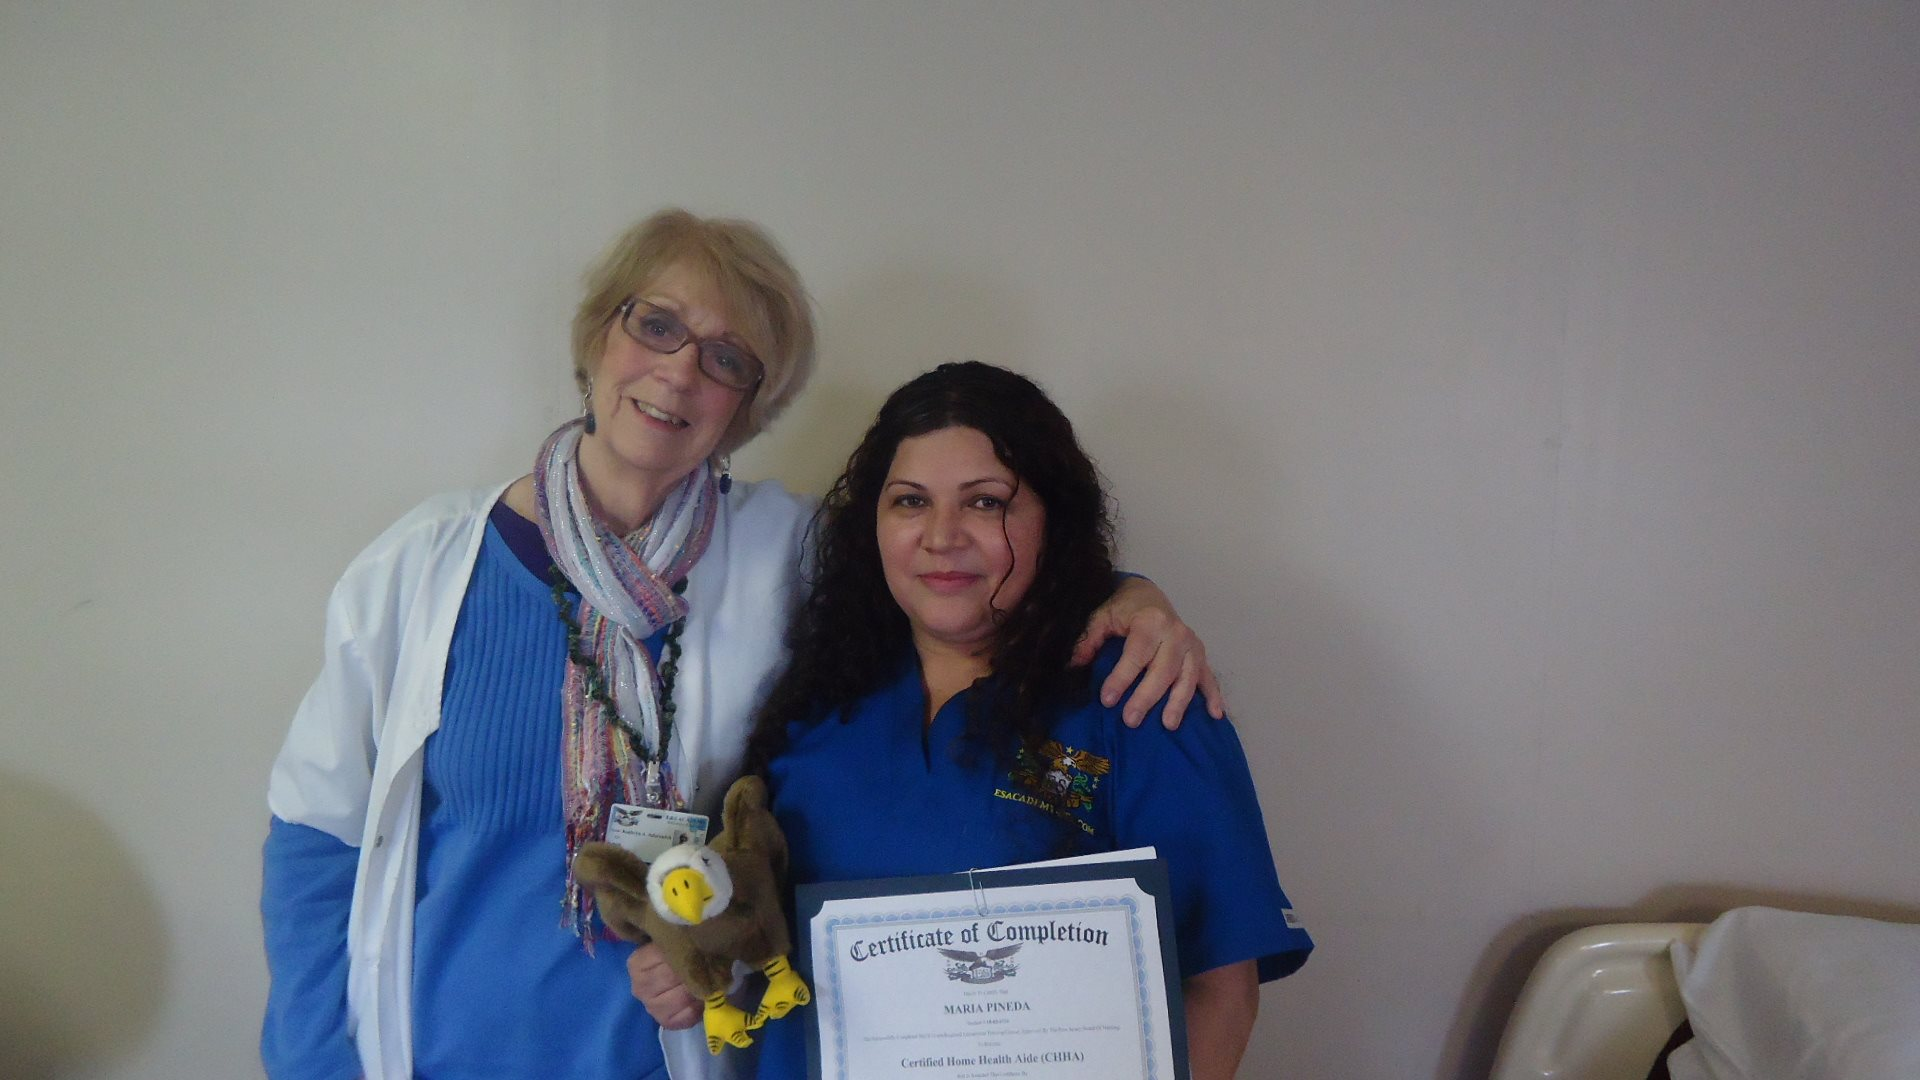 Home Health Aide Ready to Provide In Home Support Care Services